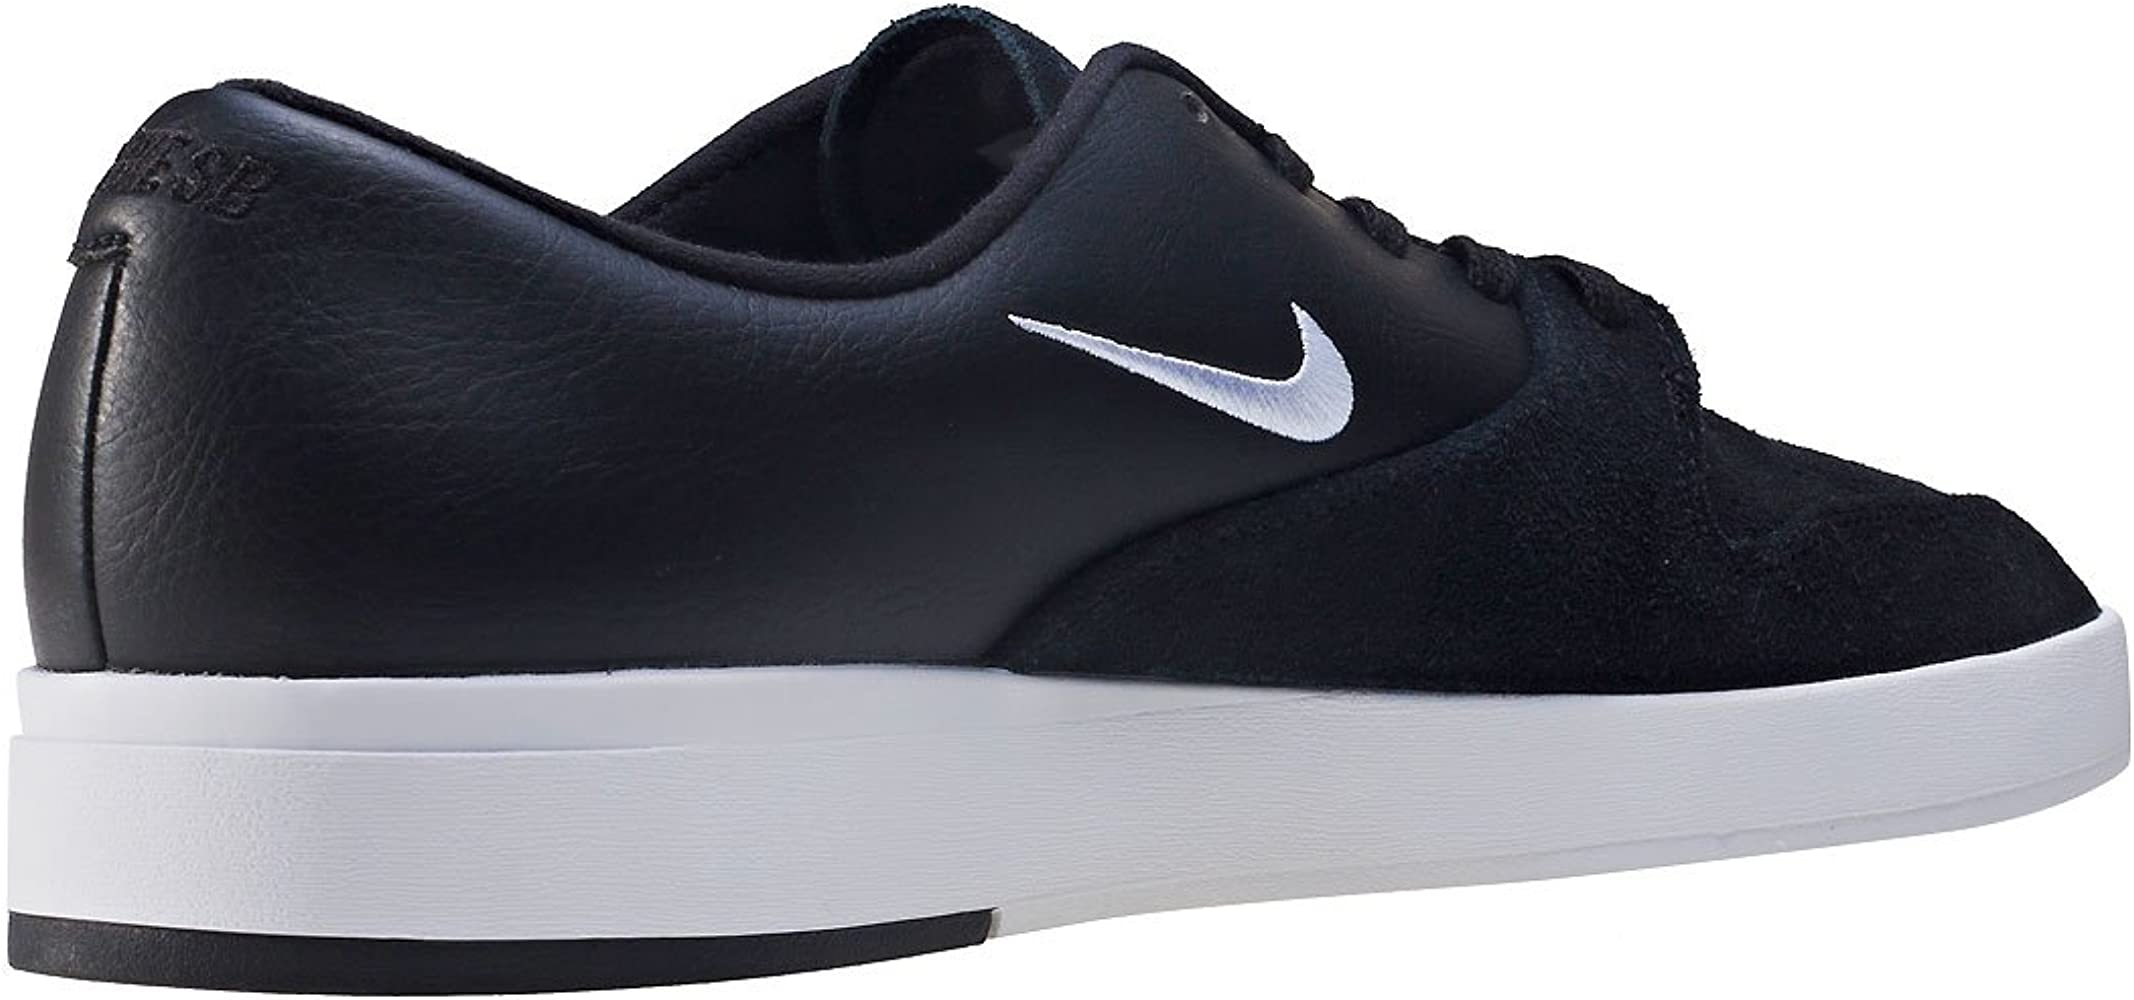 Nike SB Zoom P Rod X, Chaussures de Skateboard Homme